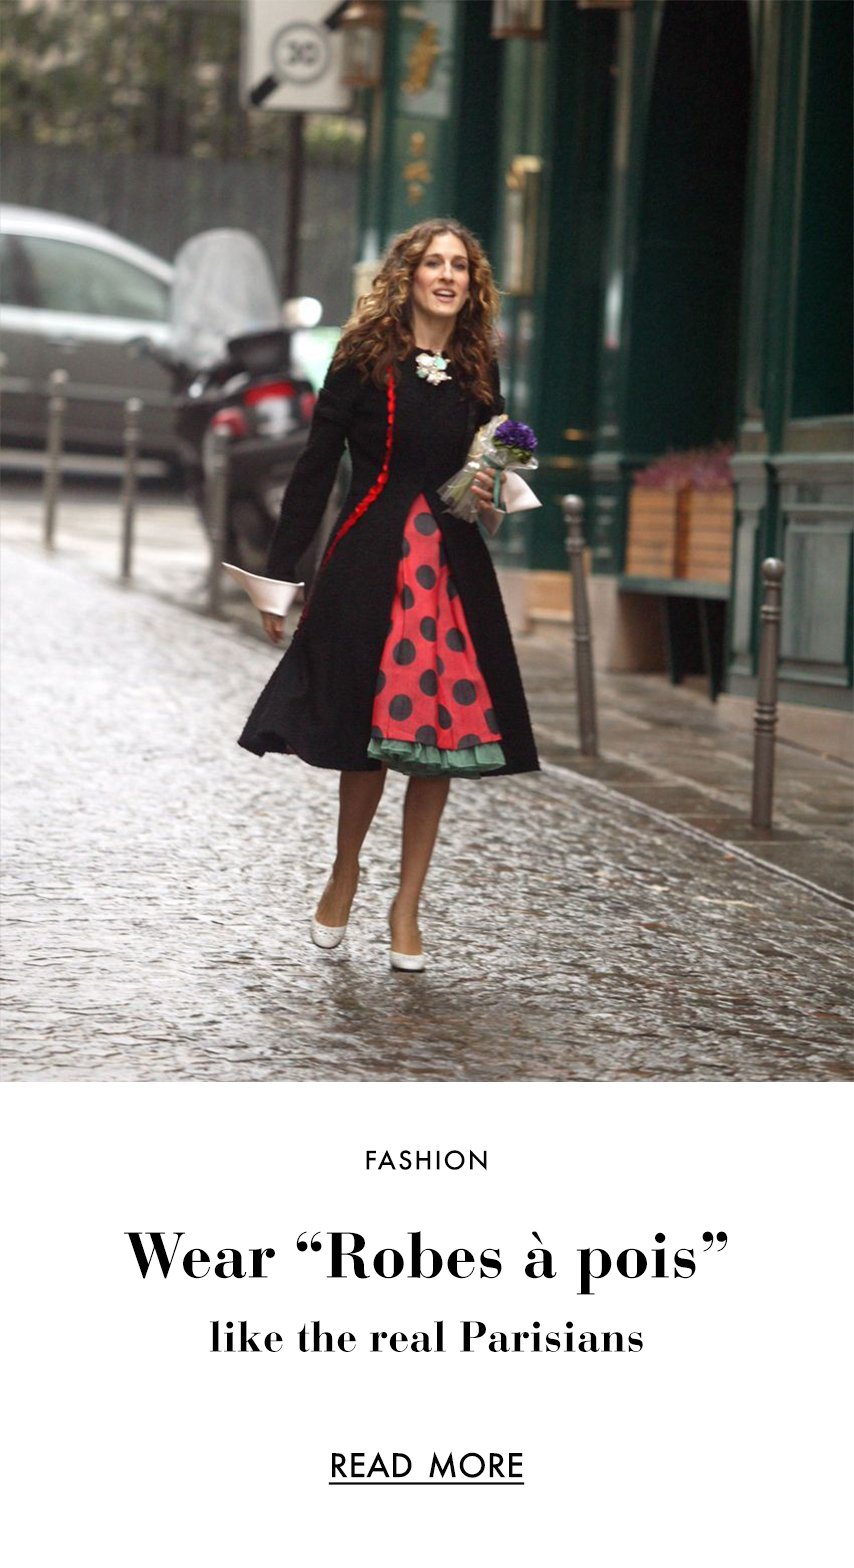 "HOW TO WEAR ""ROBES A POIS"" LIKE THE REAL PARISIANS"